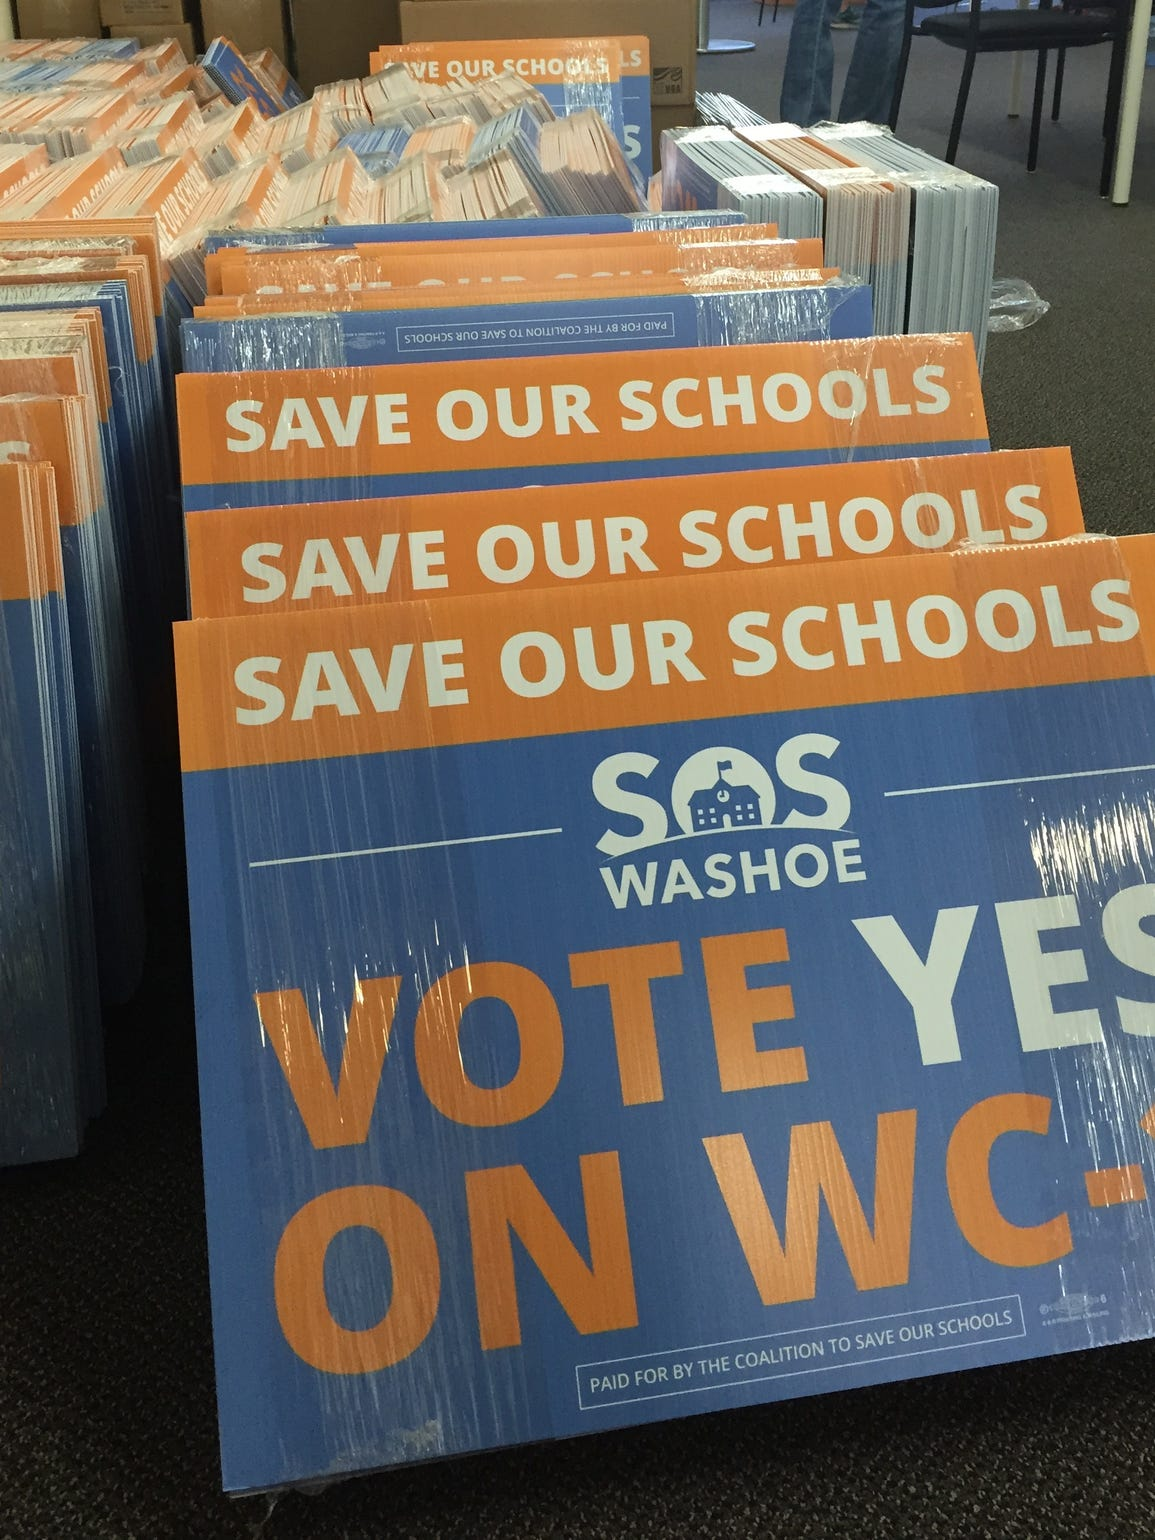 About 1,500 yard signs for the Save Our Schools campaign